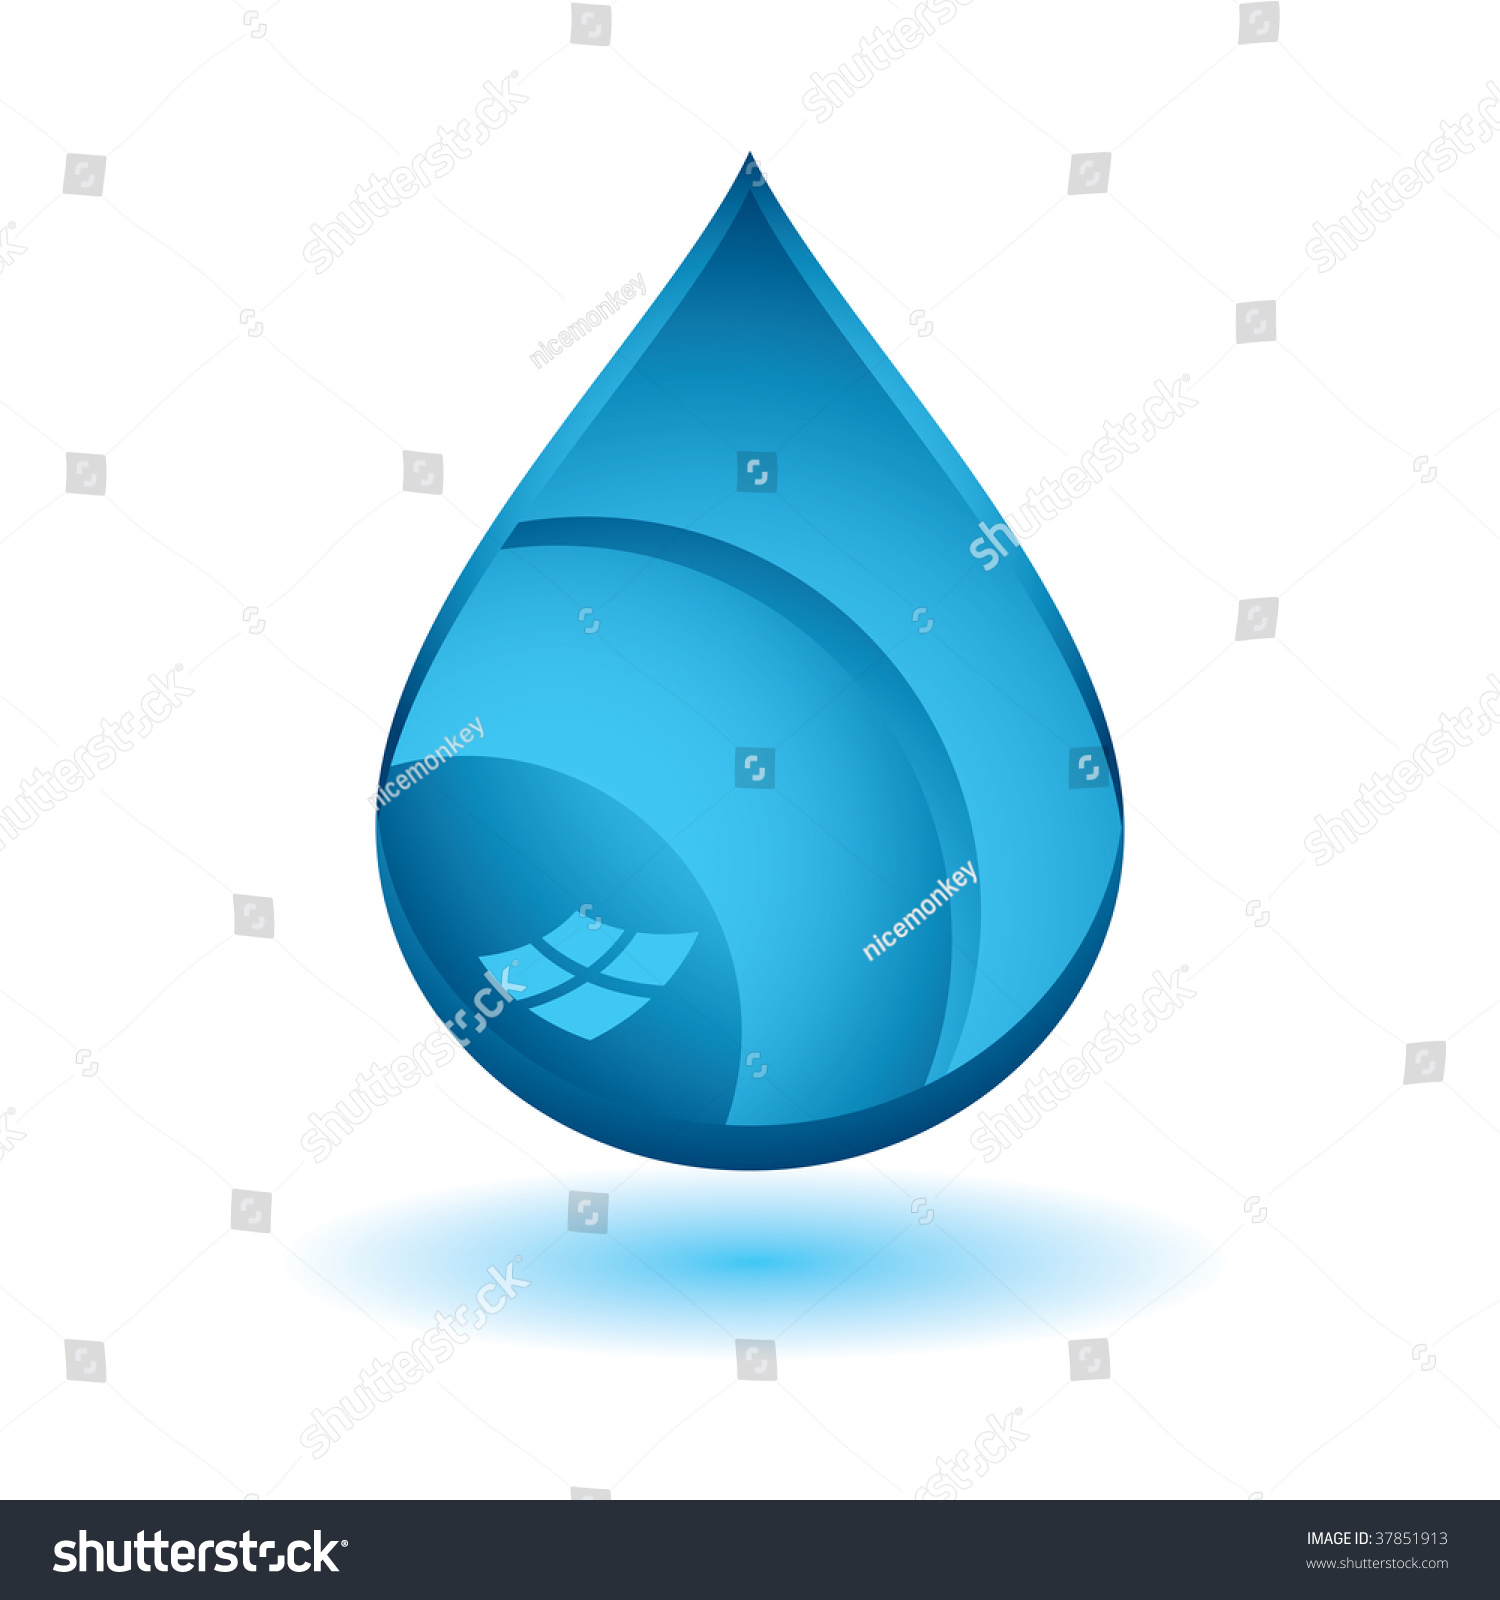 Single Blue Water Droplet Icon Drop Stock Vector 37851913 - Shutterstock